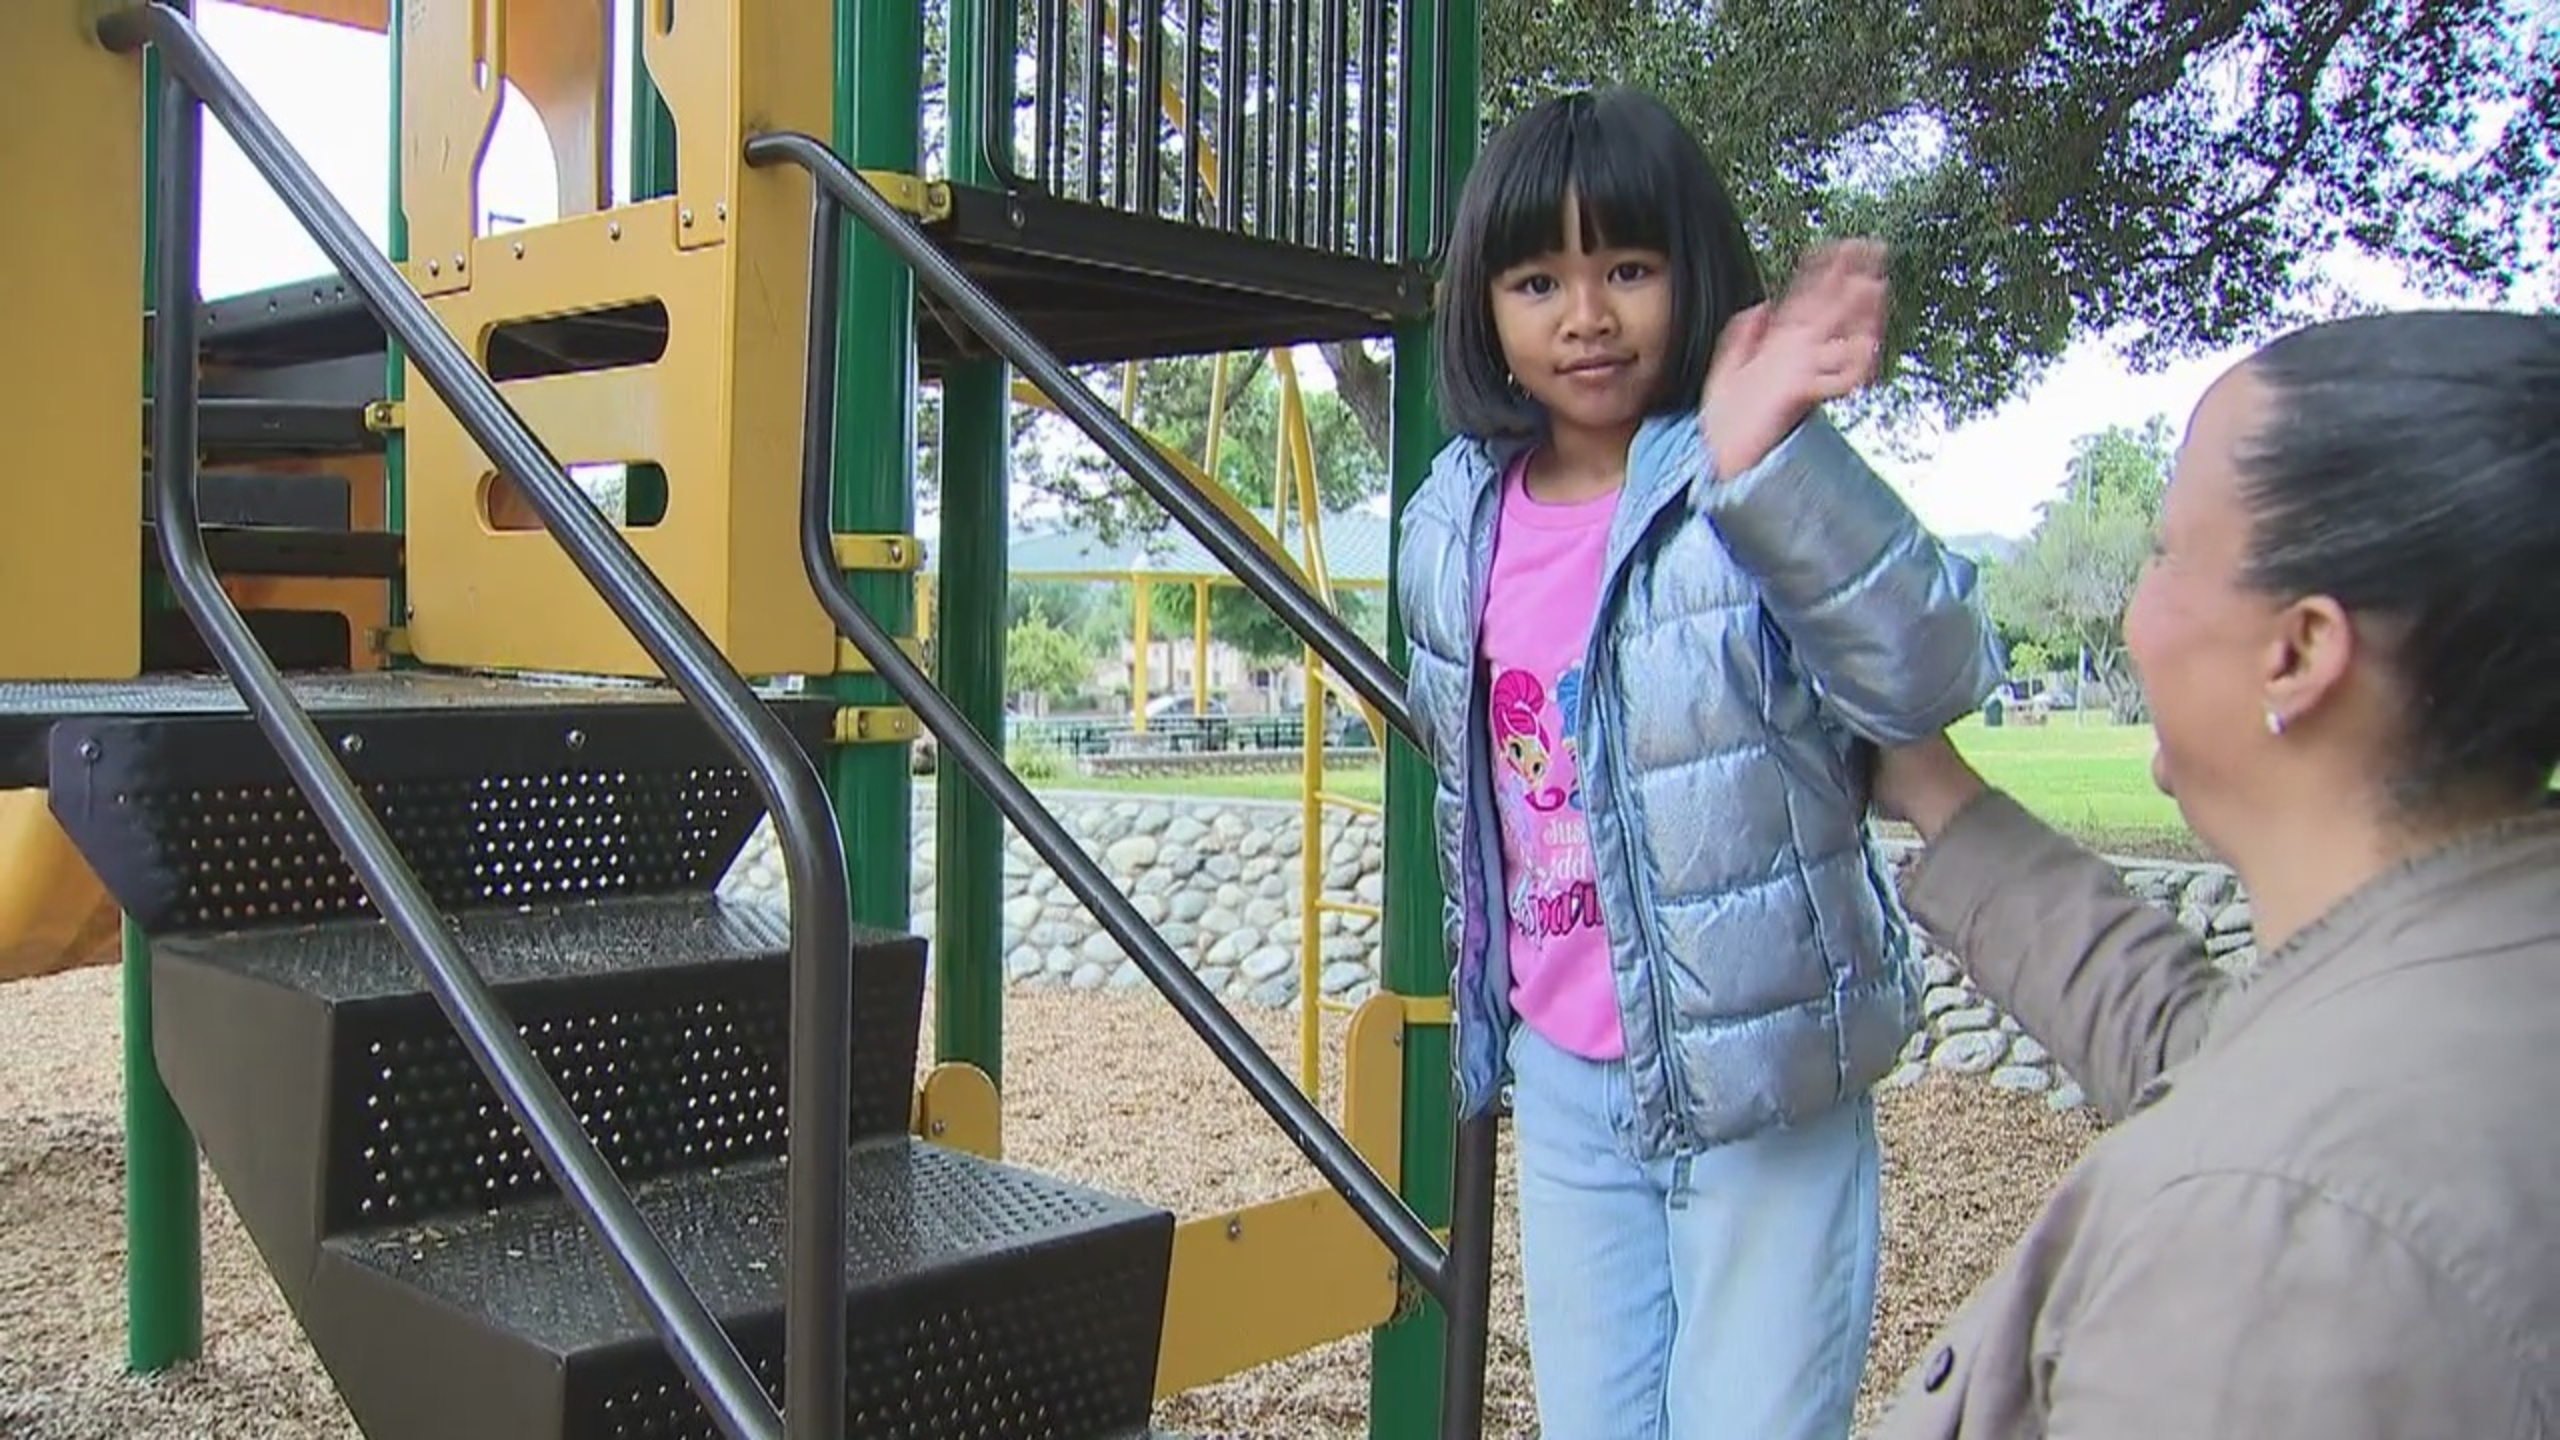 Wednesday's Child: Sweet Joanna looking for a family to call home